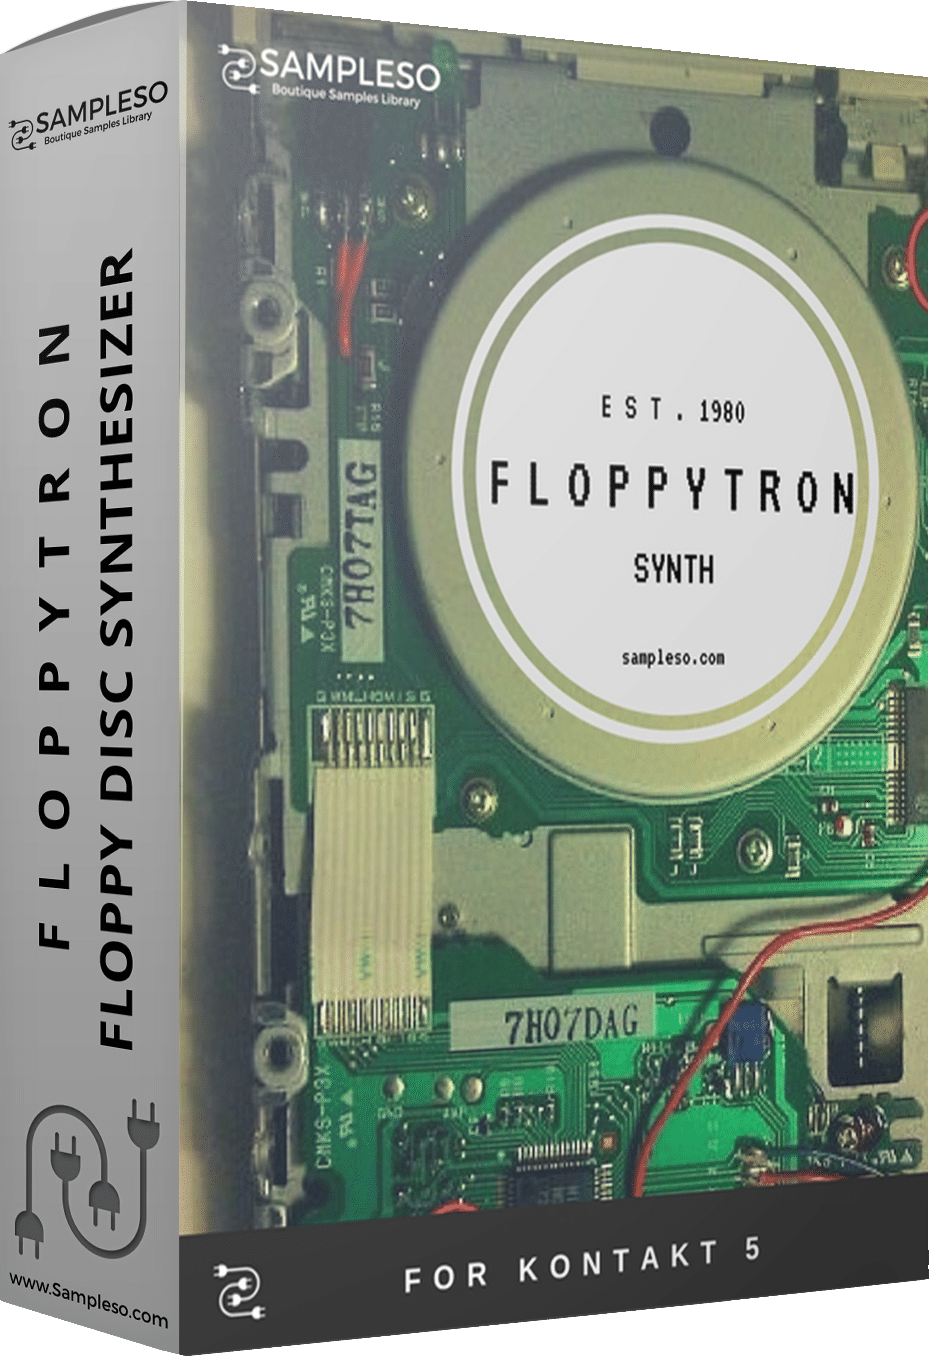 77% off 'Floppytron Synth' by Sampleso